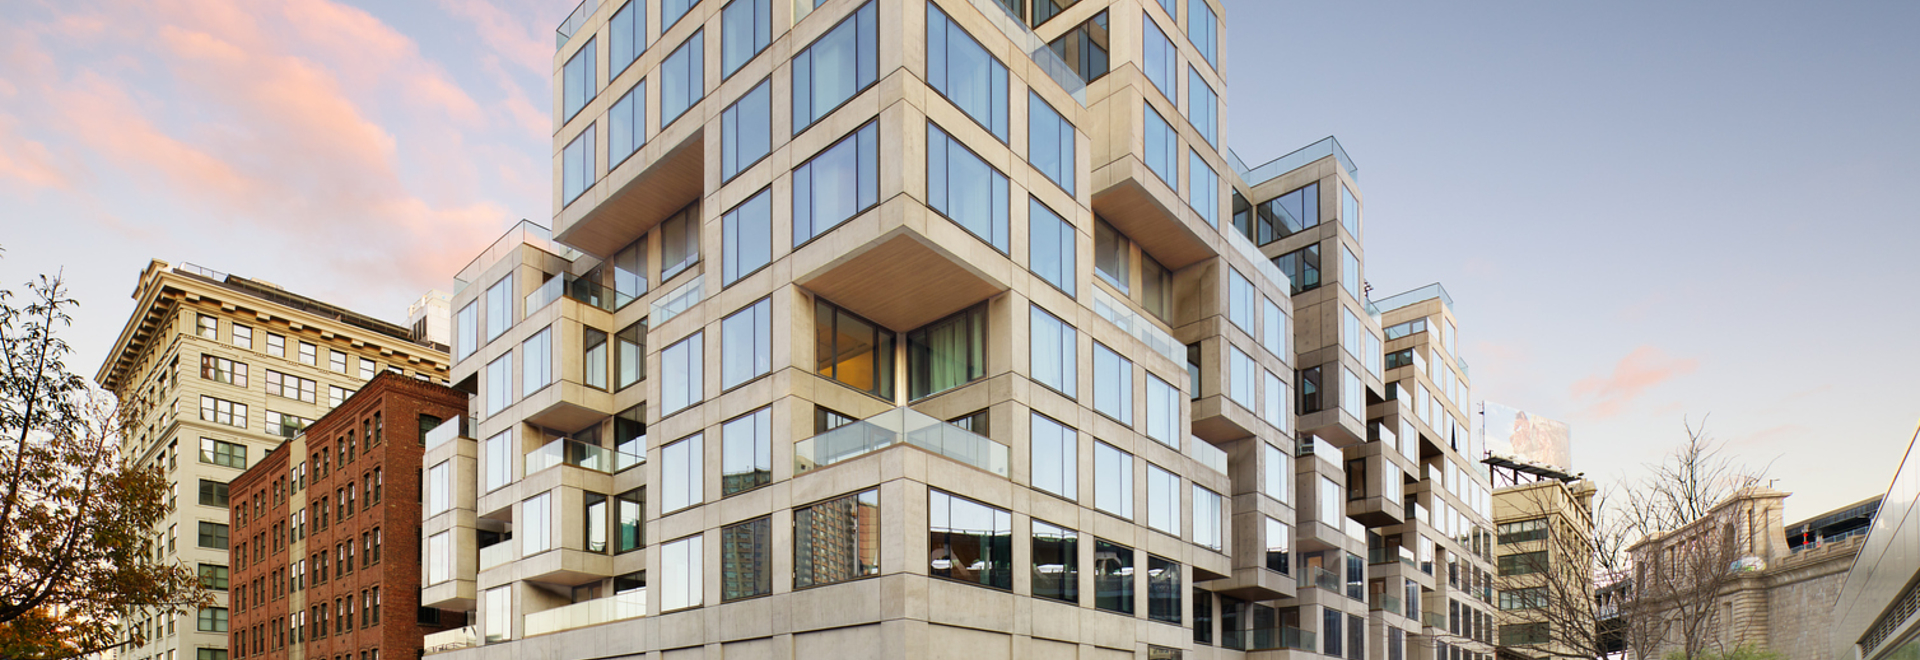 98 Front Apartments / ODA New York